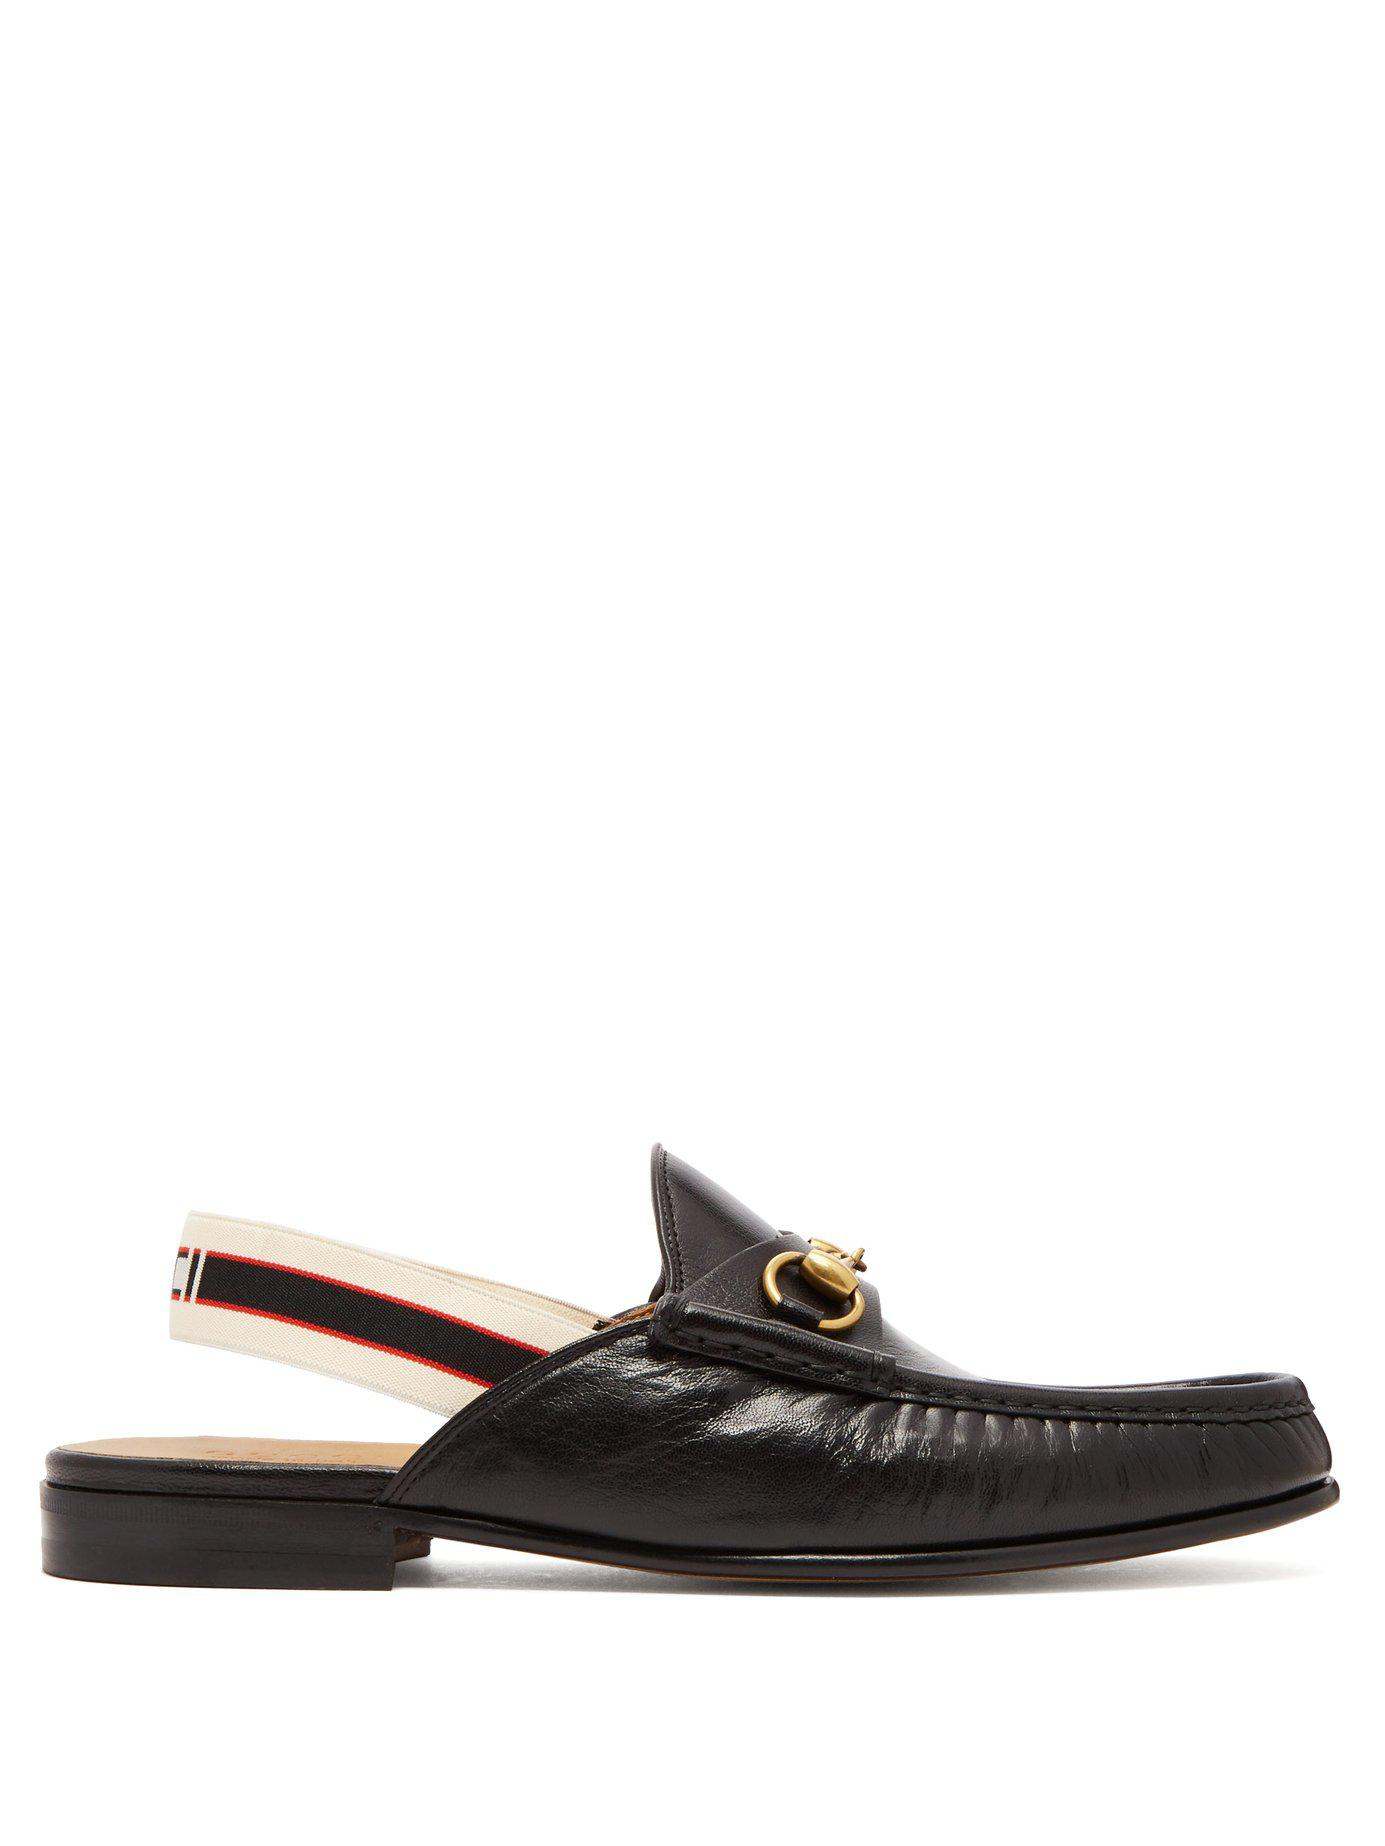 f6326201478 Lyst - Gucci Horsebit Slingback Strap Backless Leather Loafers in ...